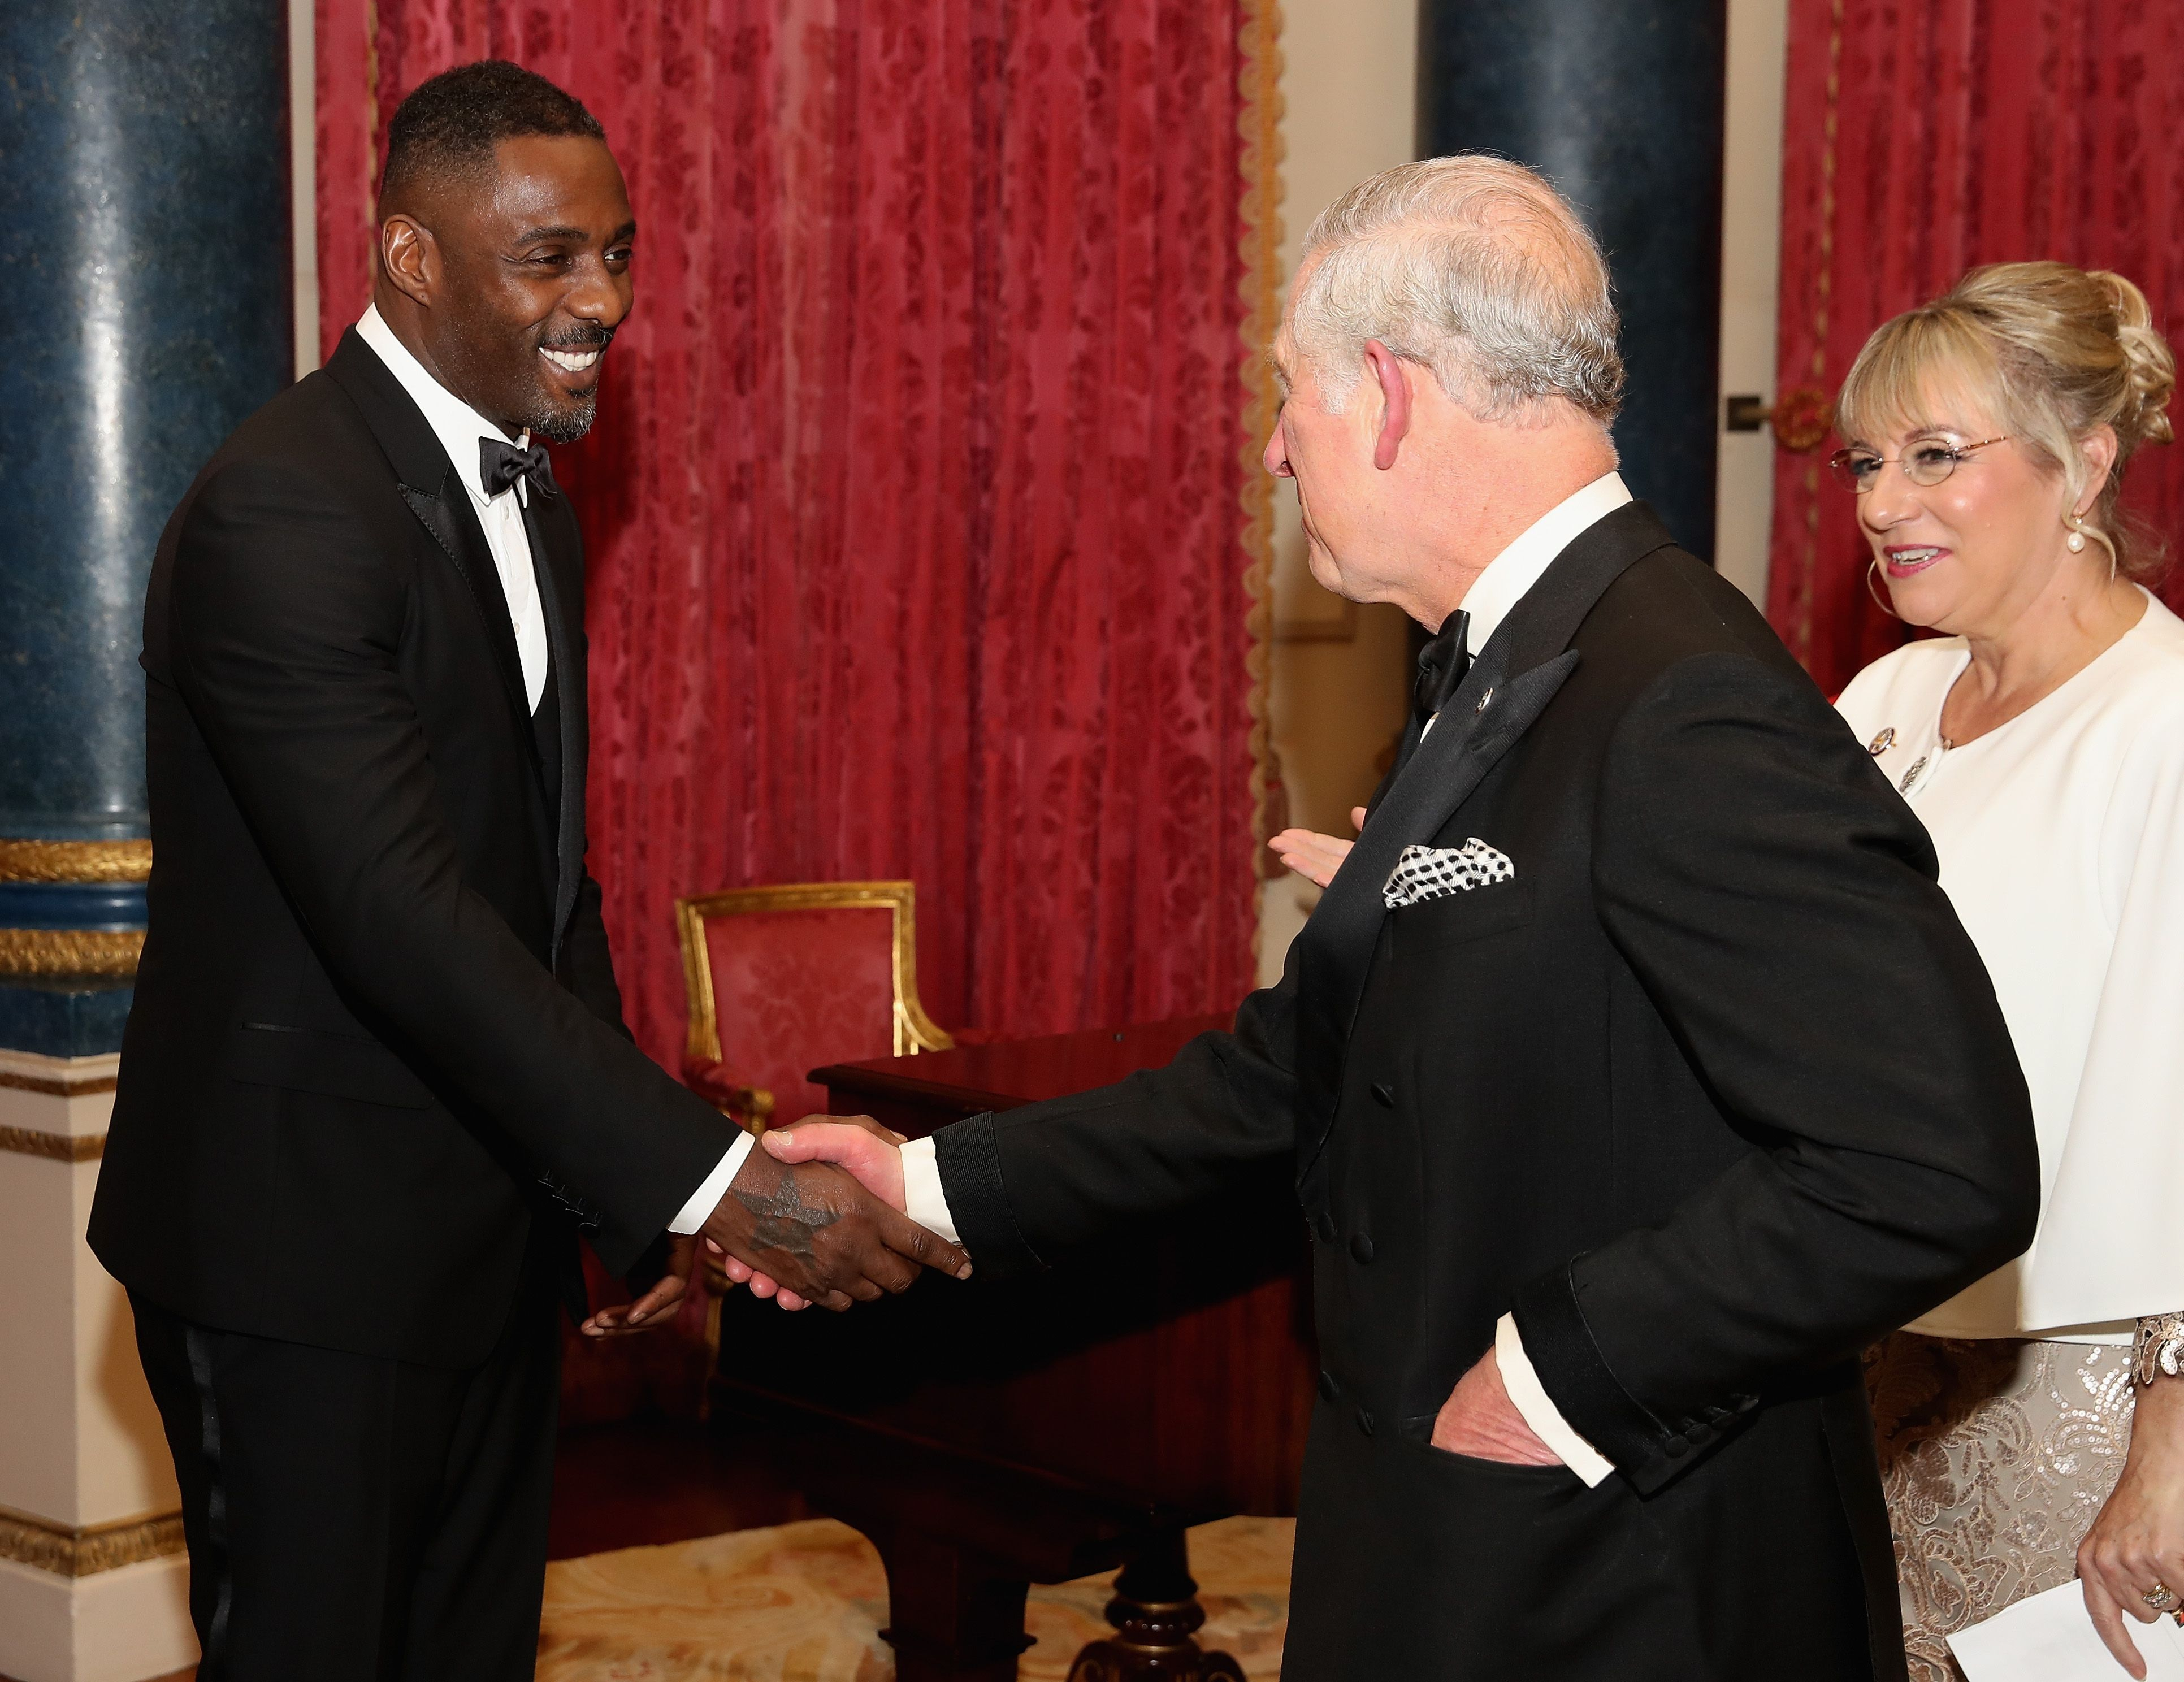 Idris Elba Just Gushed About Meghan Markle At A Dinner With Prince Charles